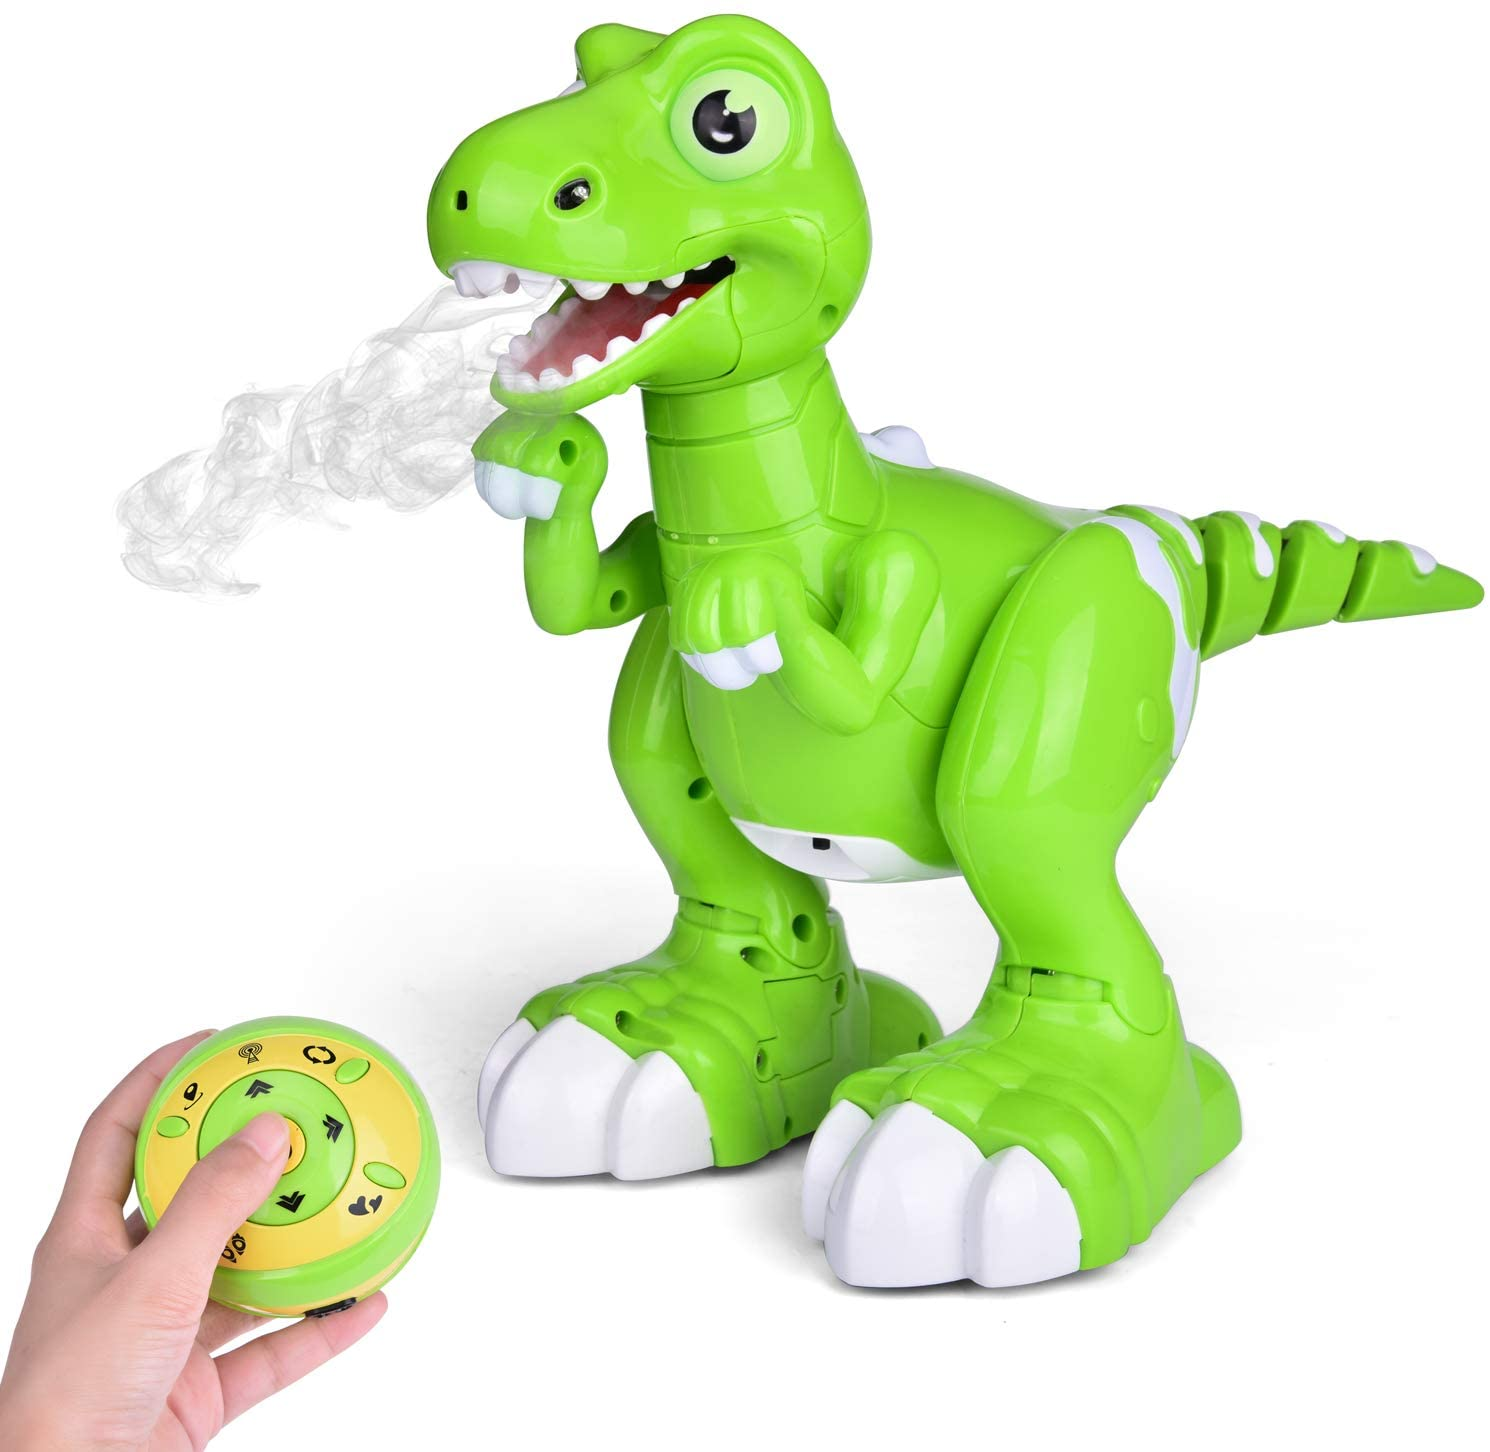 FUN LITTLE TOYS Remote Control Dinosaur Toy, Electronic Dinosaur for Kids, with Glowing Eyes, Walking, Dancing, Turning Around and Spraying Mist, Robot Dinosaur for Boys and Girls